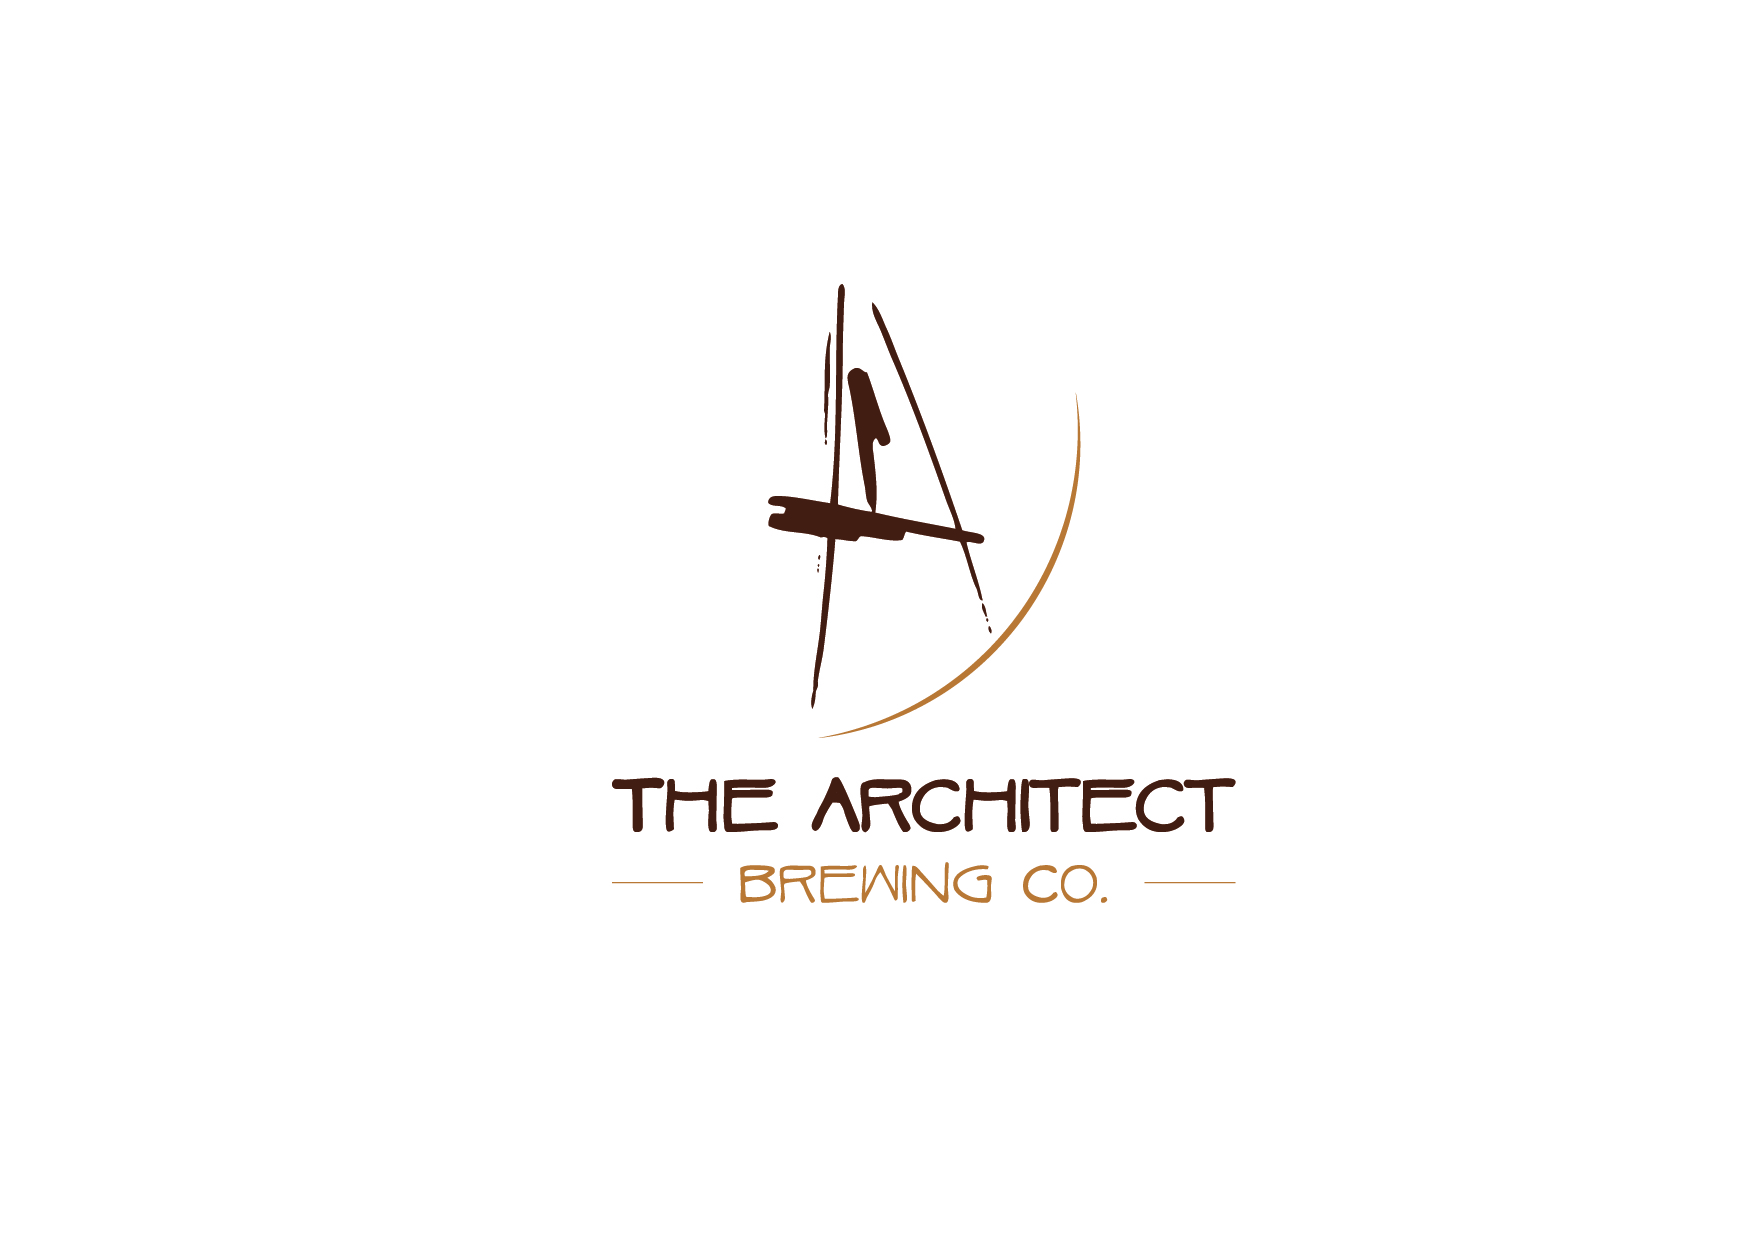 Logo Design by Kirallos Henin - Entry No. 14 in the Logo Design Contest Captivating Logo Design for The Architect Brewing Co..